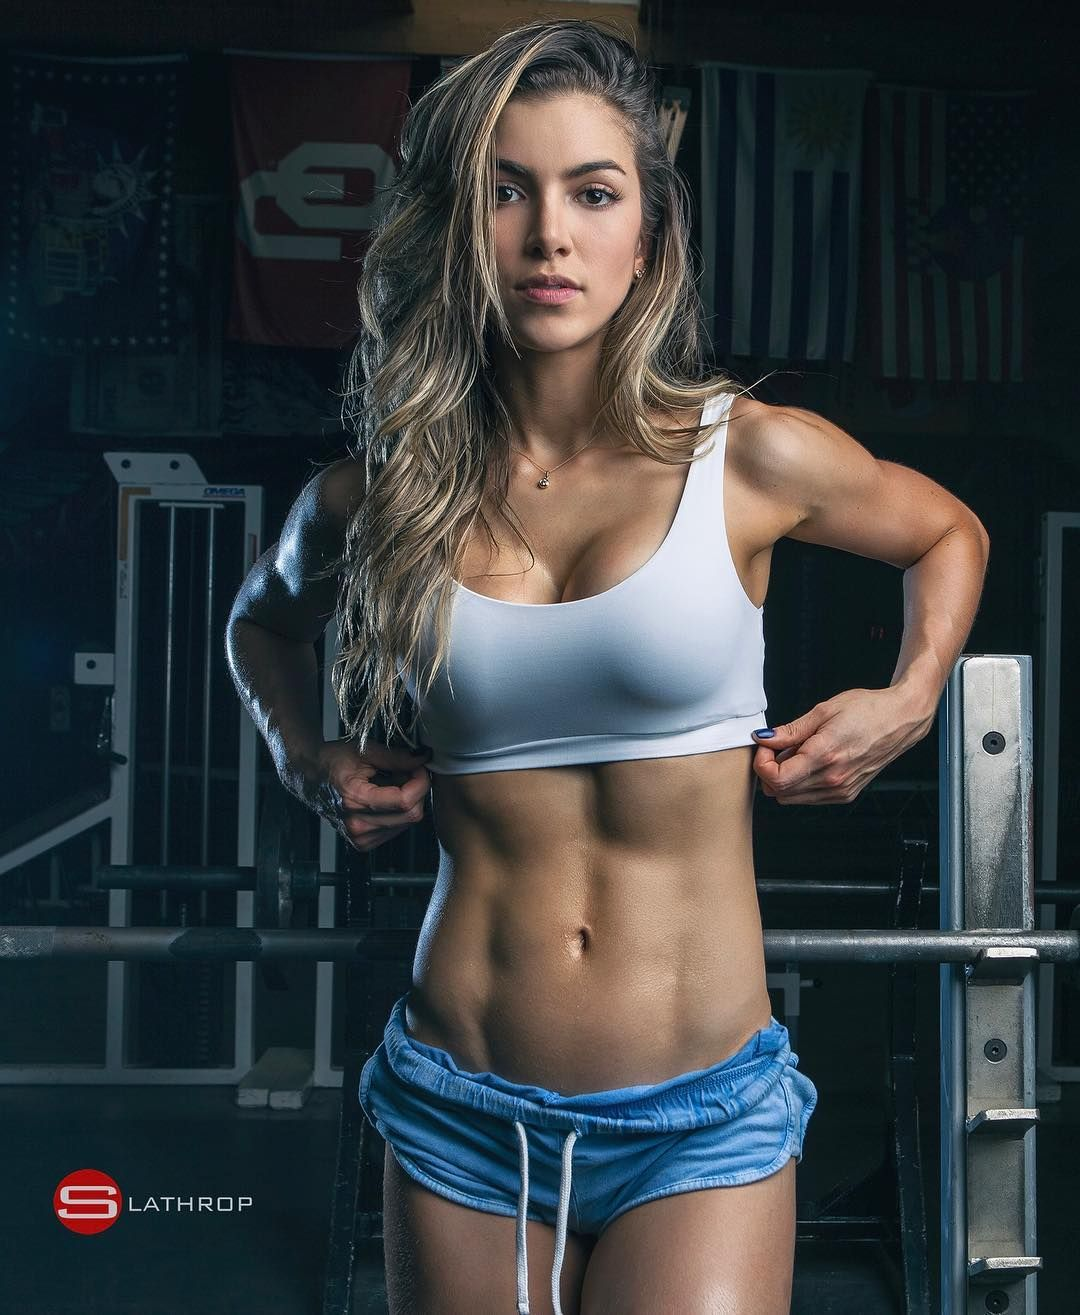 Pornstars turned fitness chicks #13